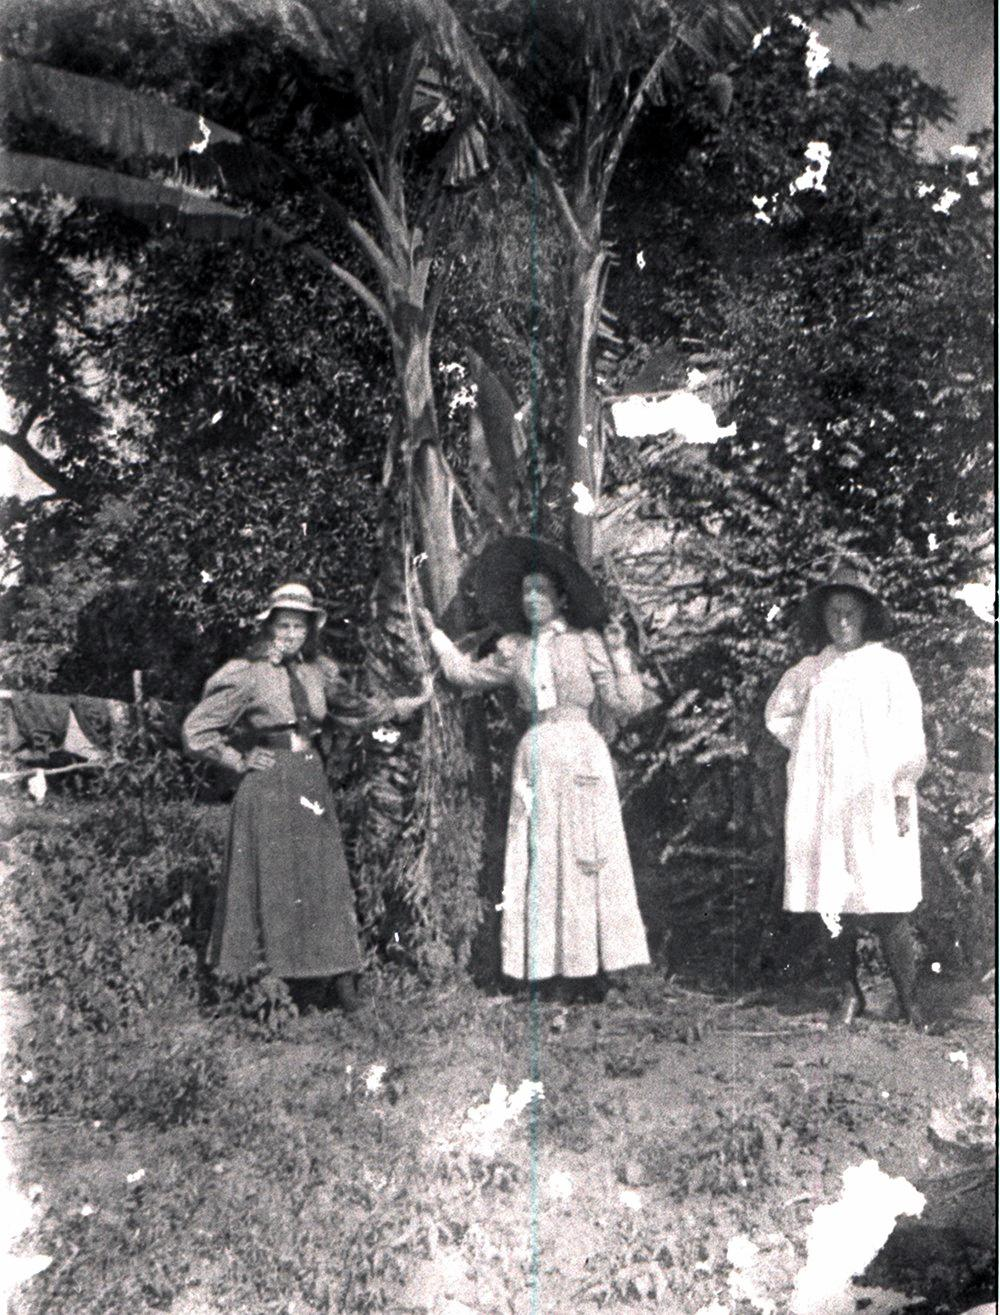 TH130-01 Three Bray family members in the garden at Kynnumboon, C.1900